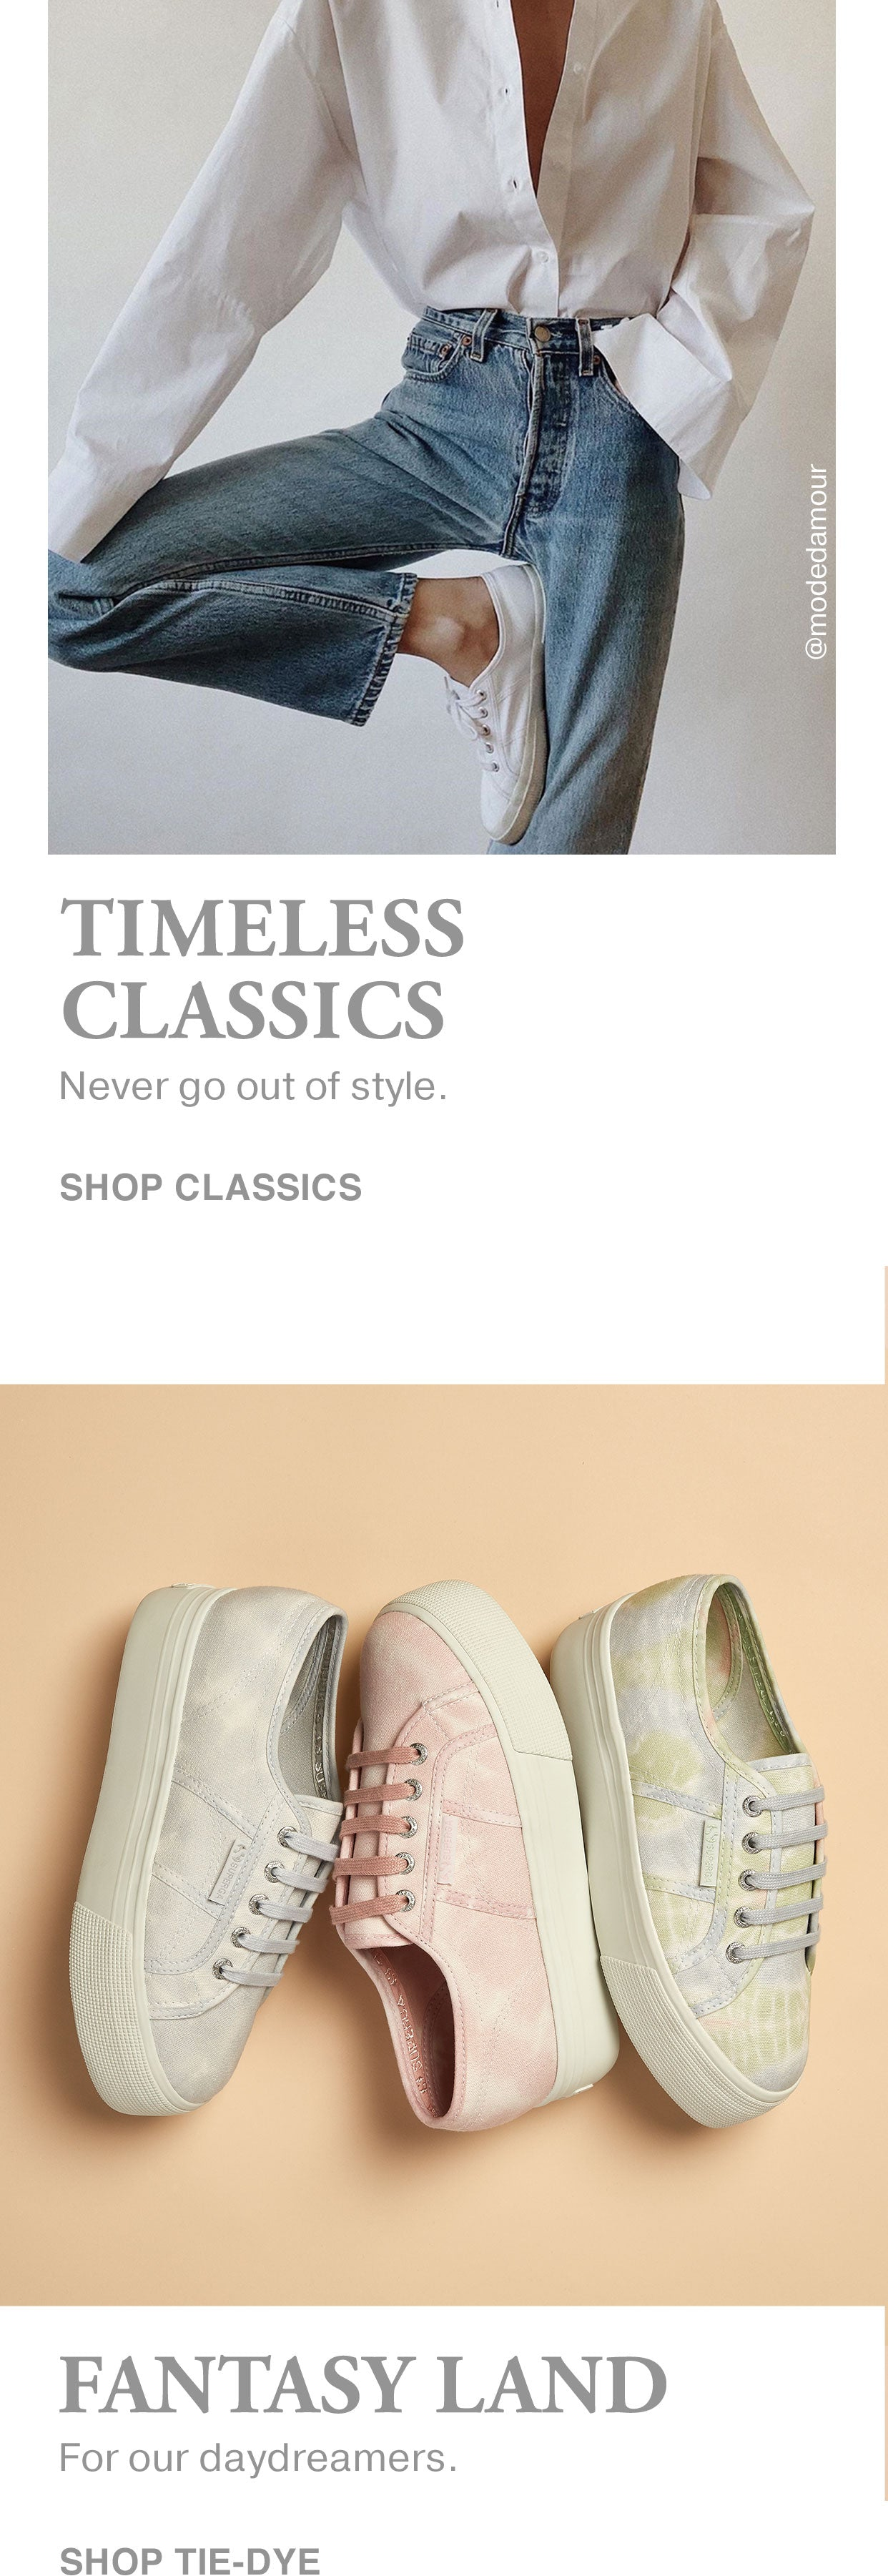 Fantasy Land - Timeless Classics Banner Mobile